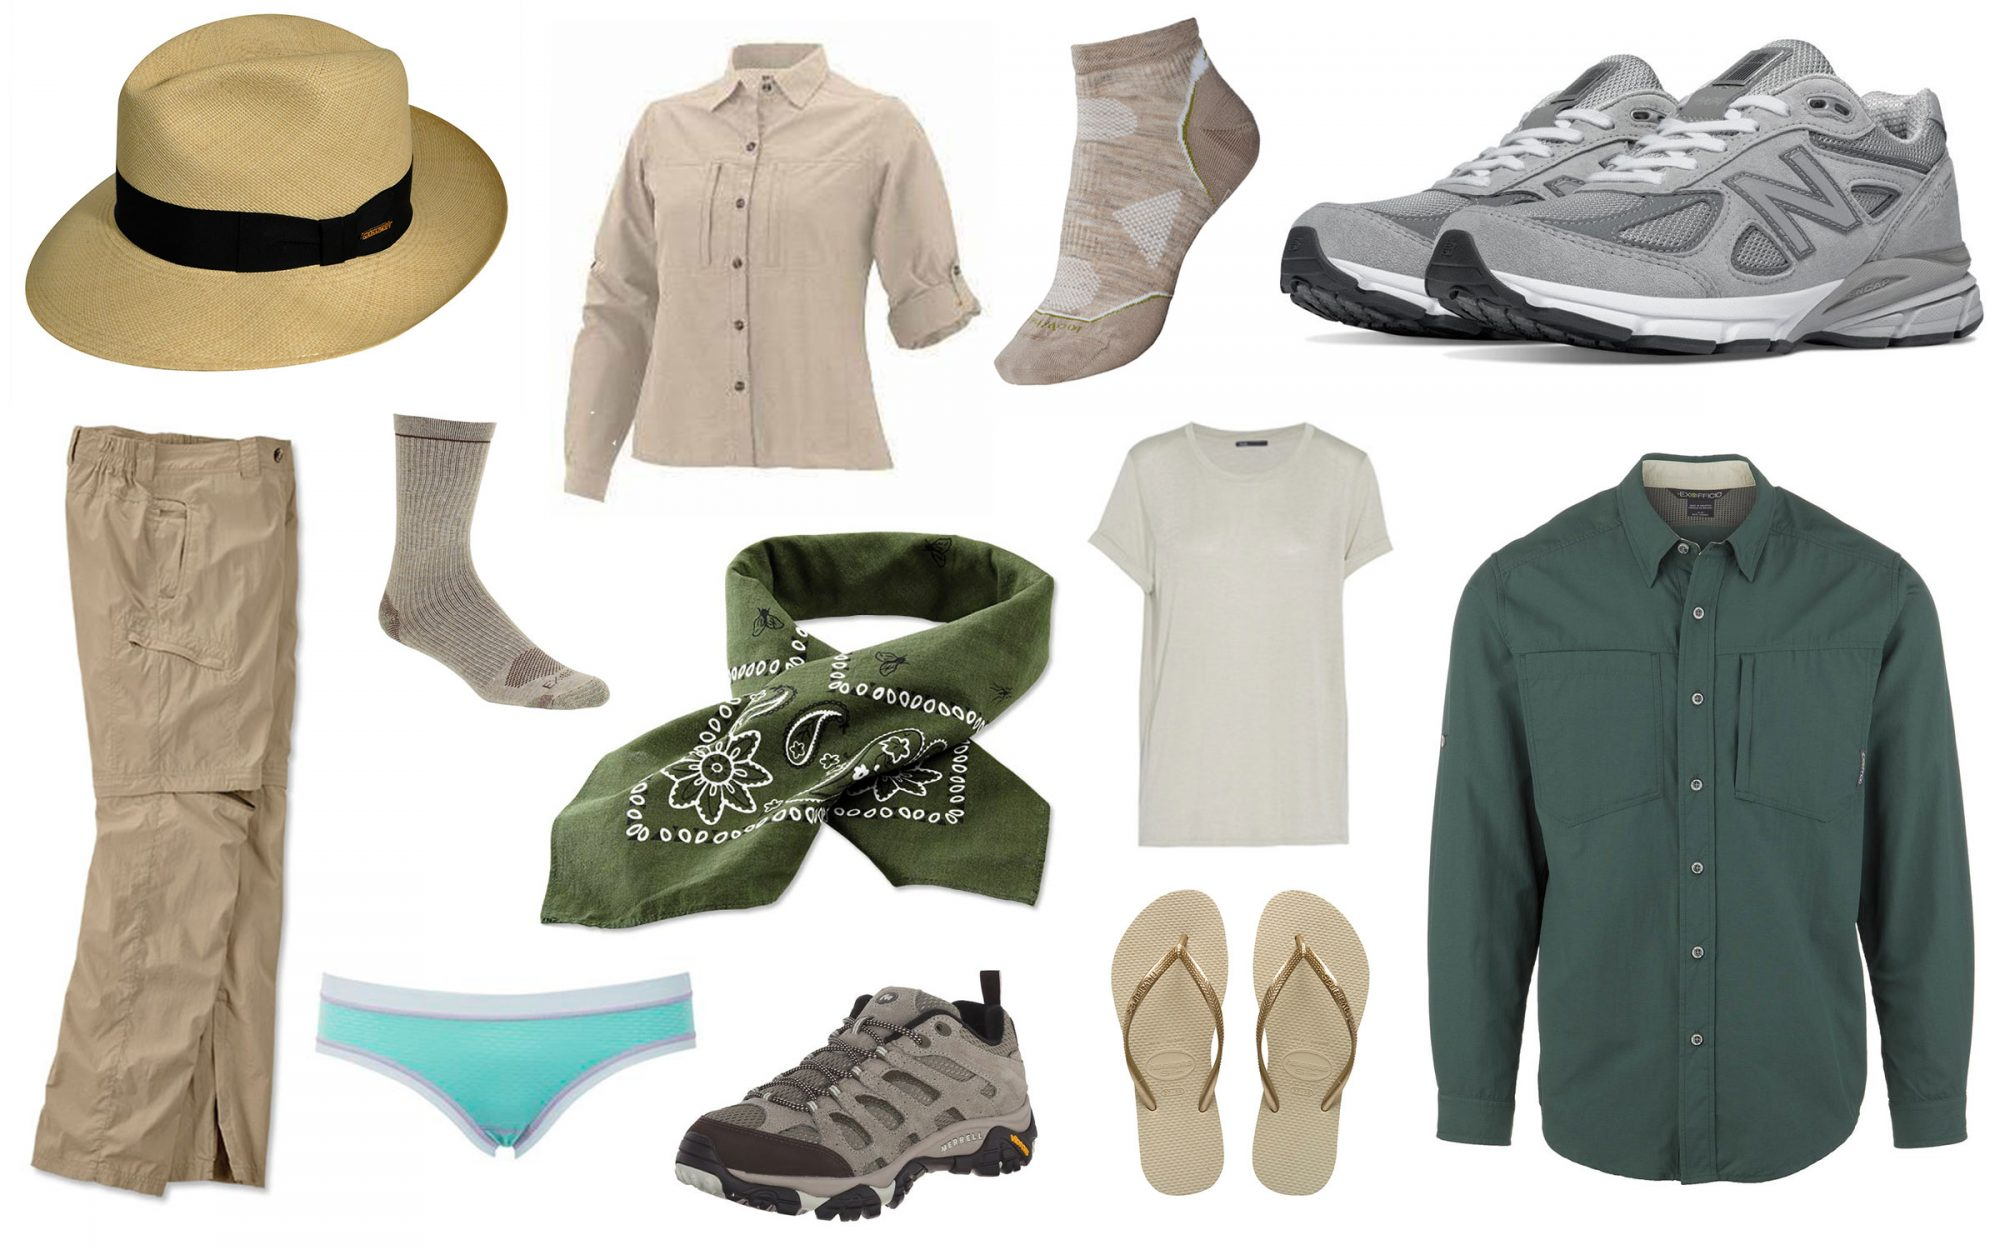 845a17d2b2b74 The Ultimate Safari Packing List  Clothes